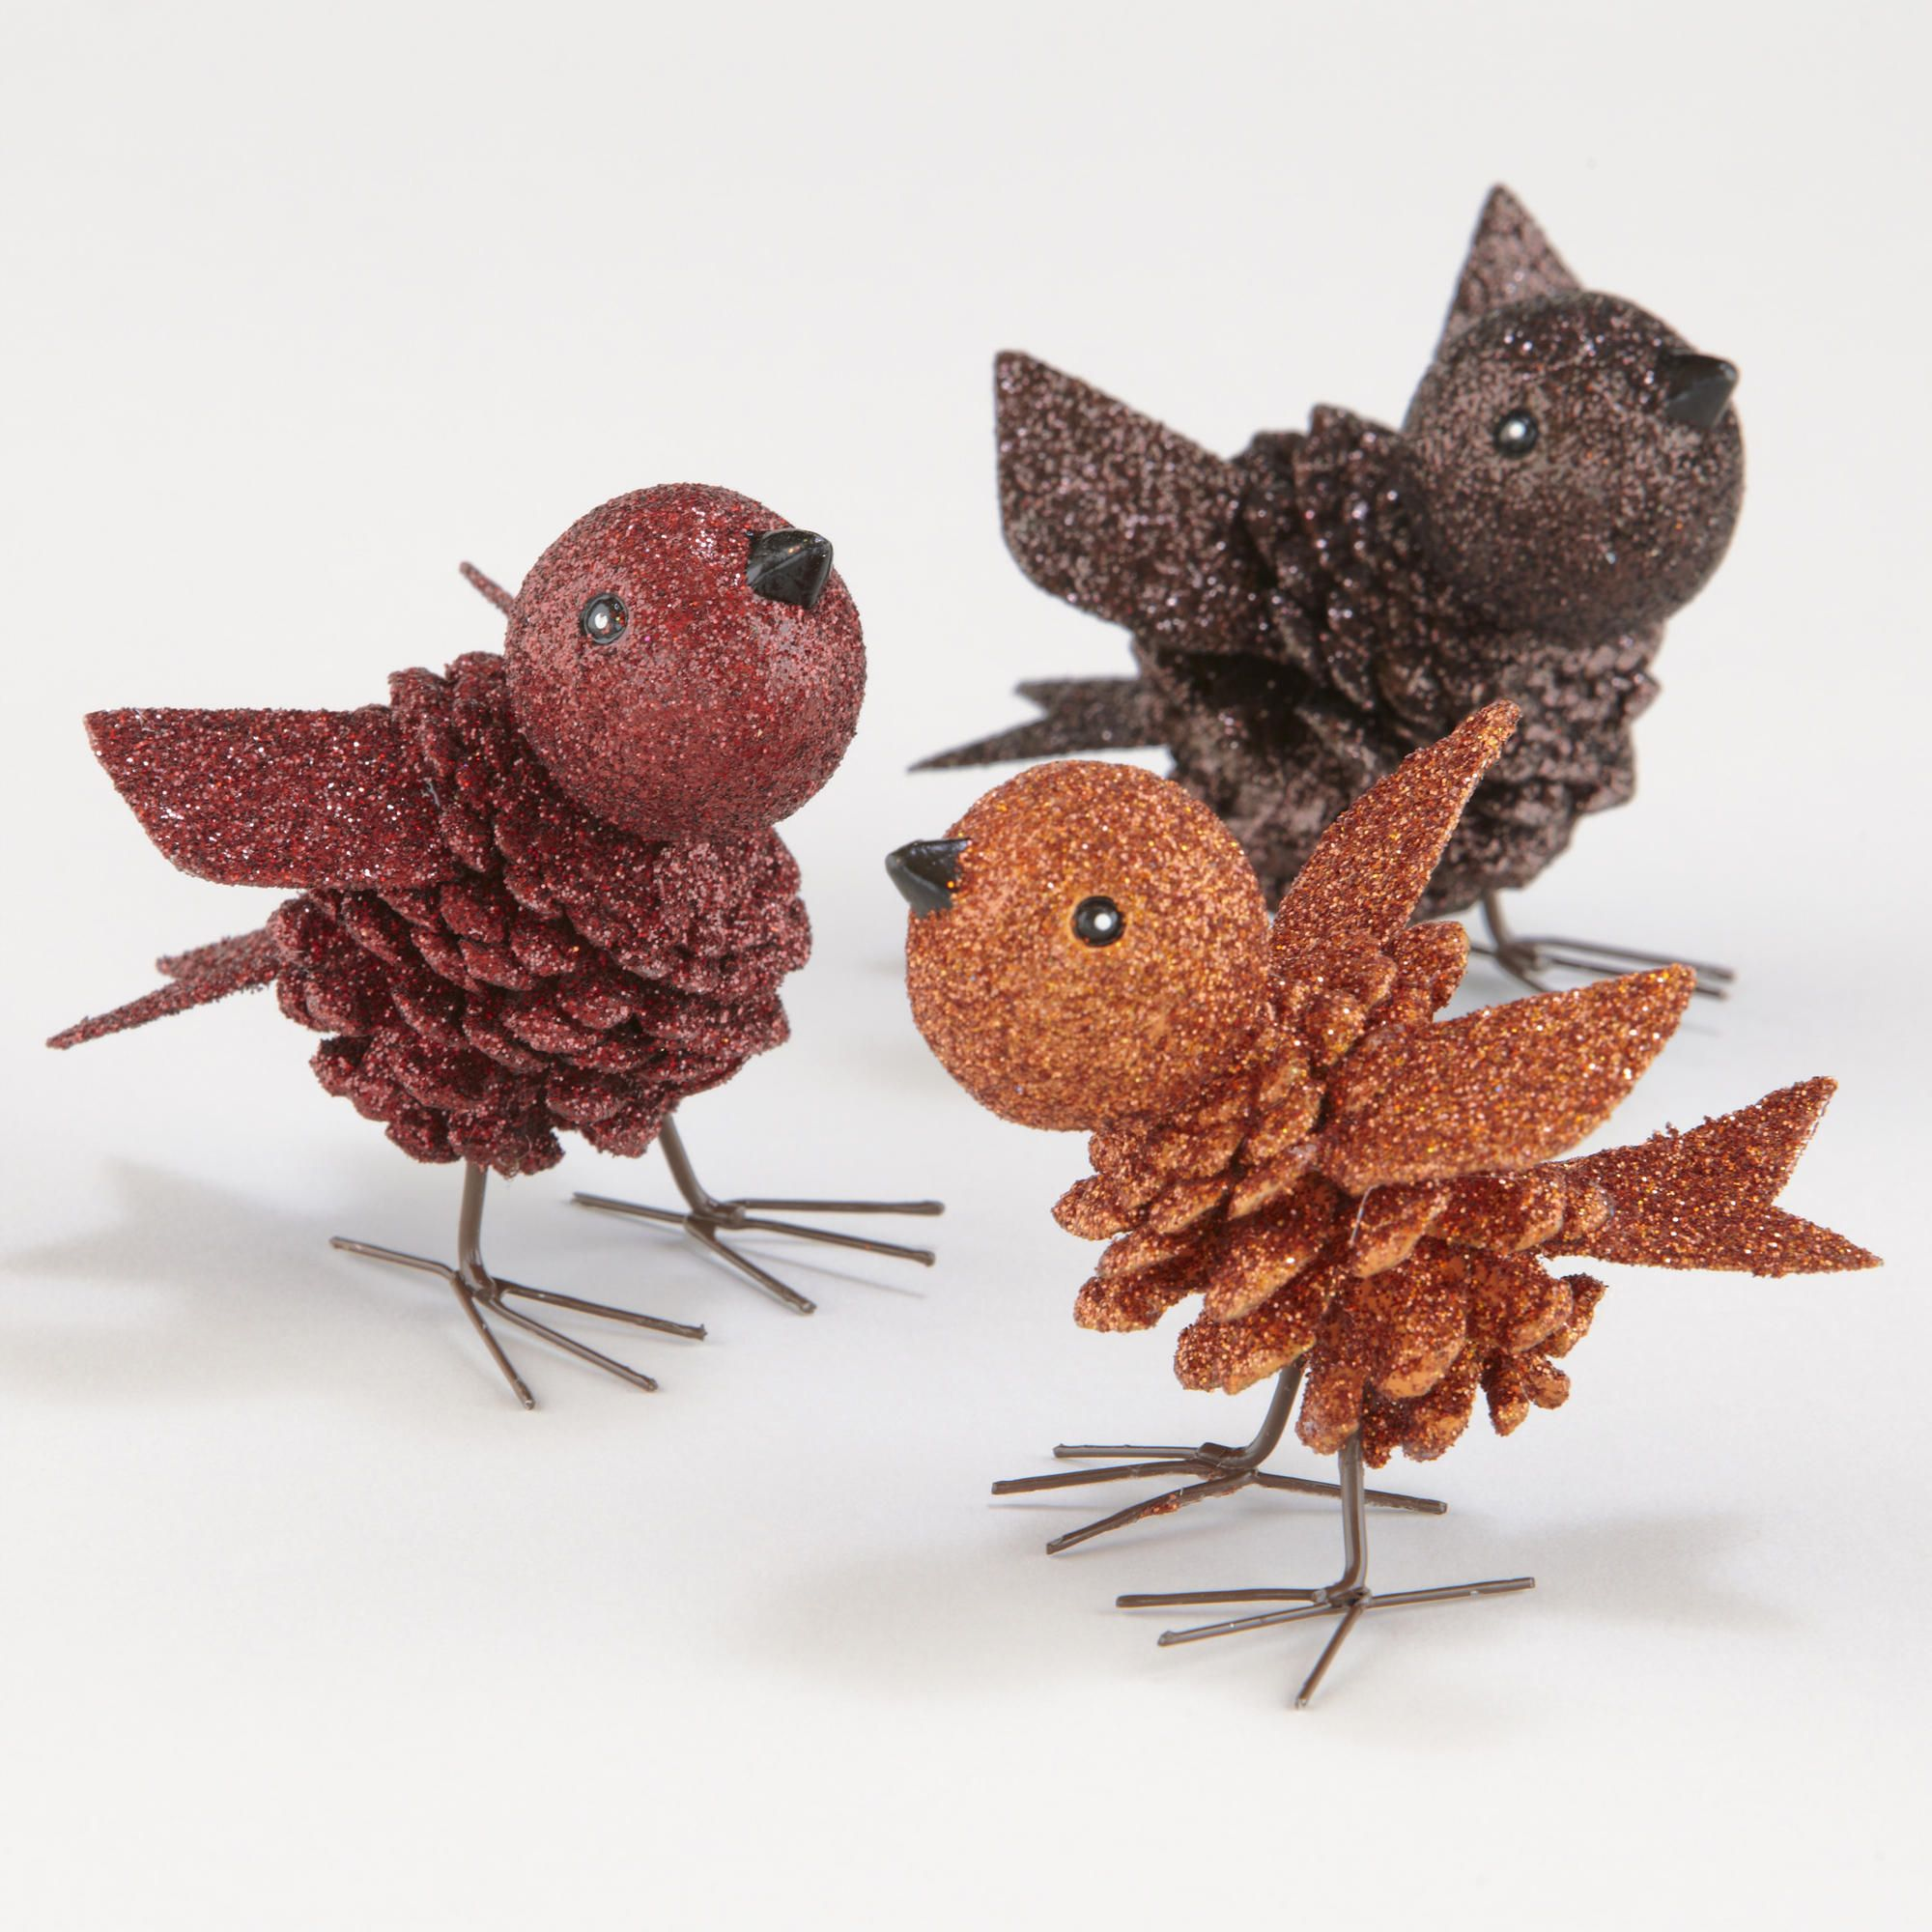 Glitter Pinecone Birds Tabletop D Cor, Set Of 3 -